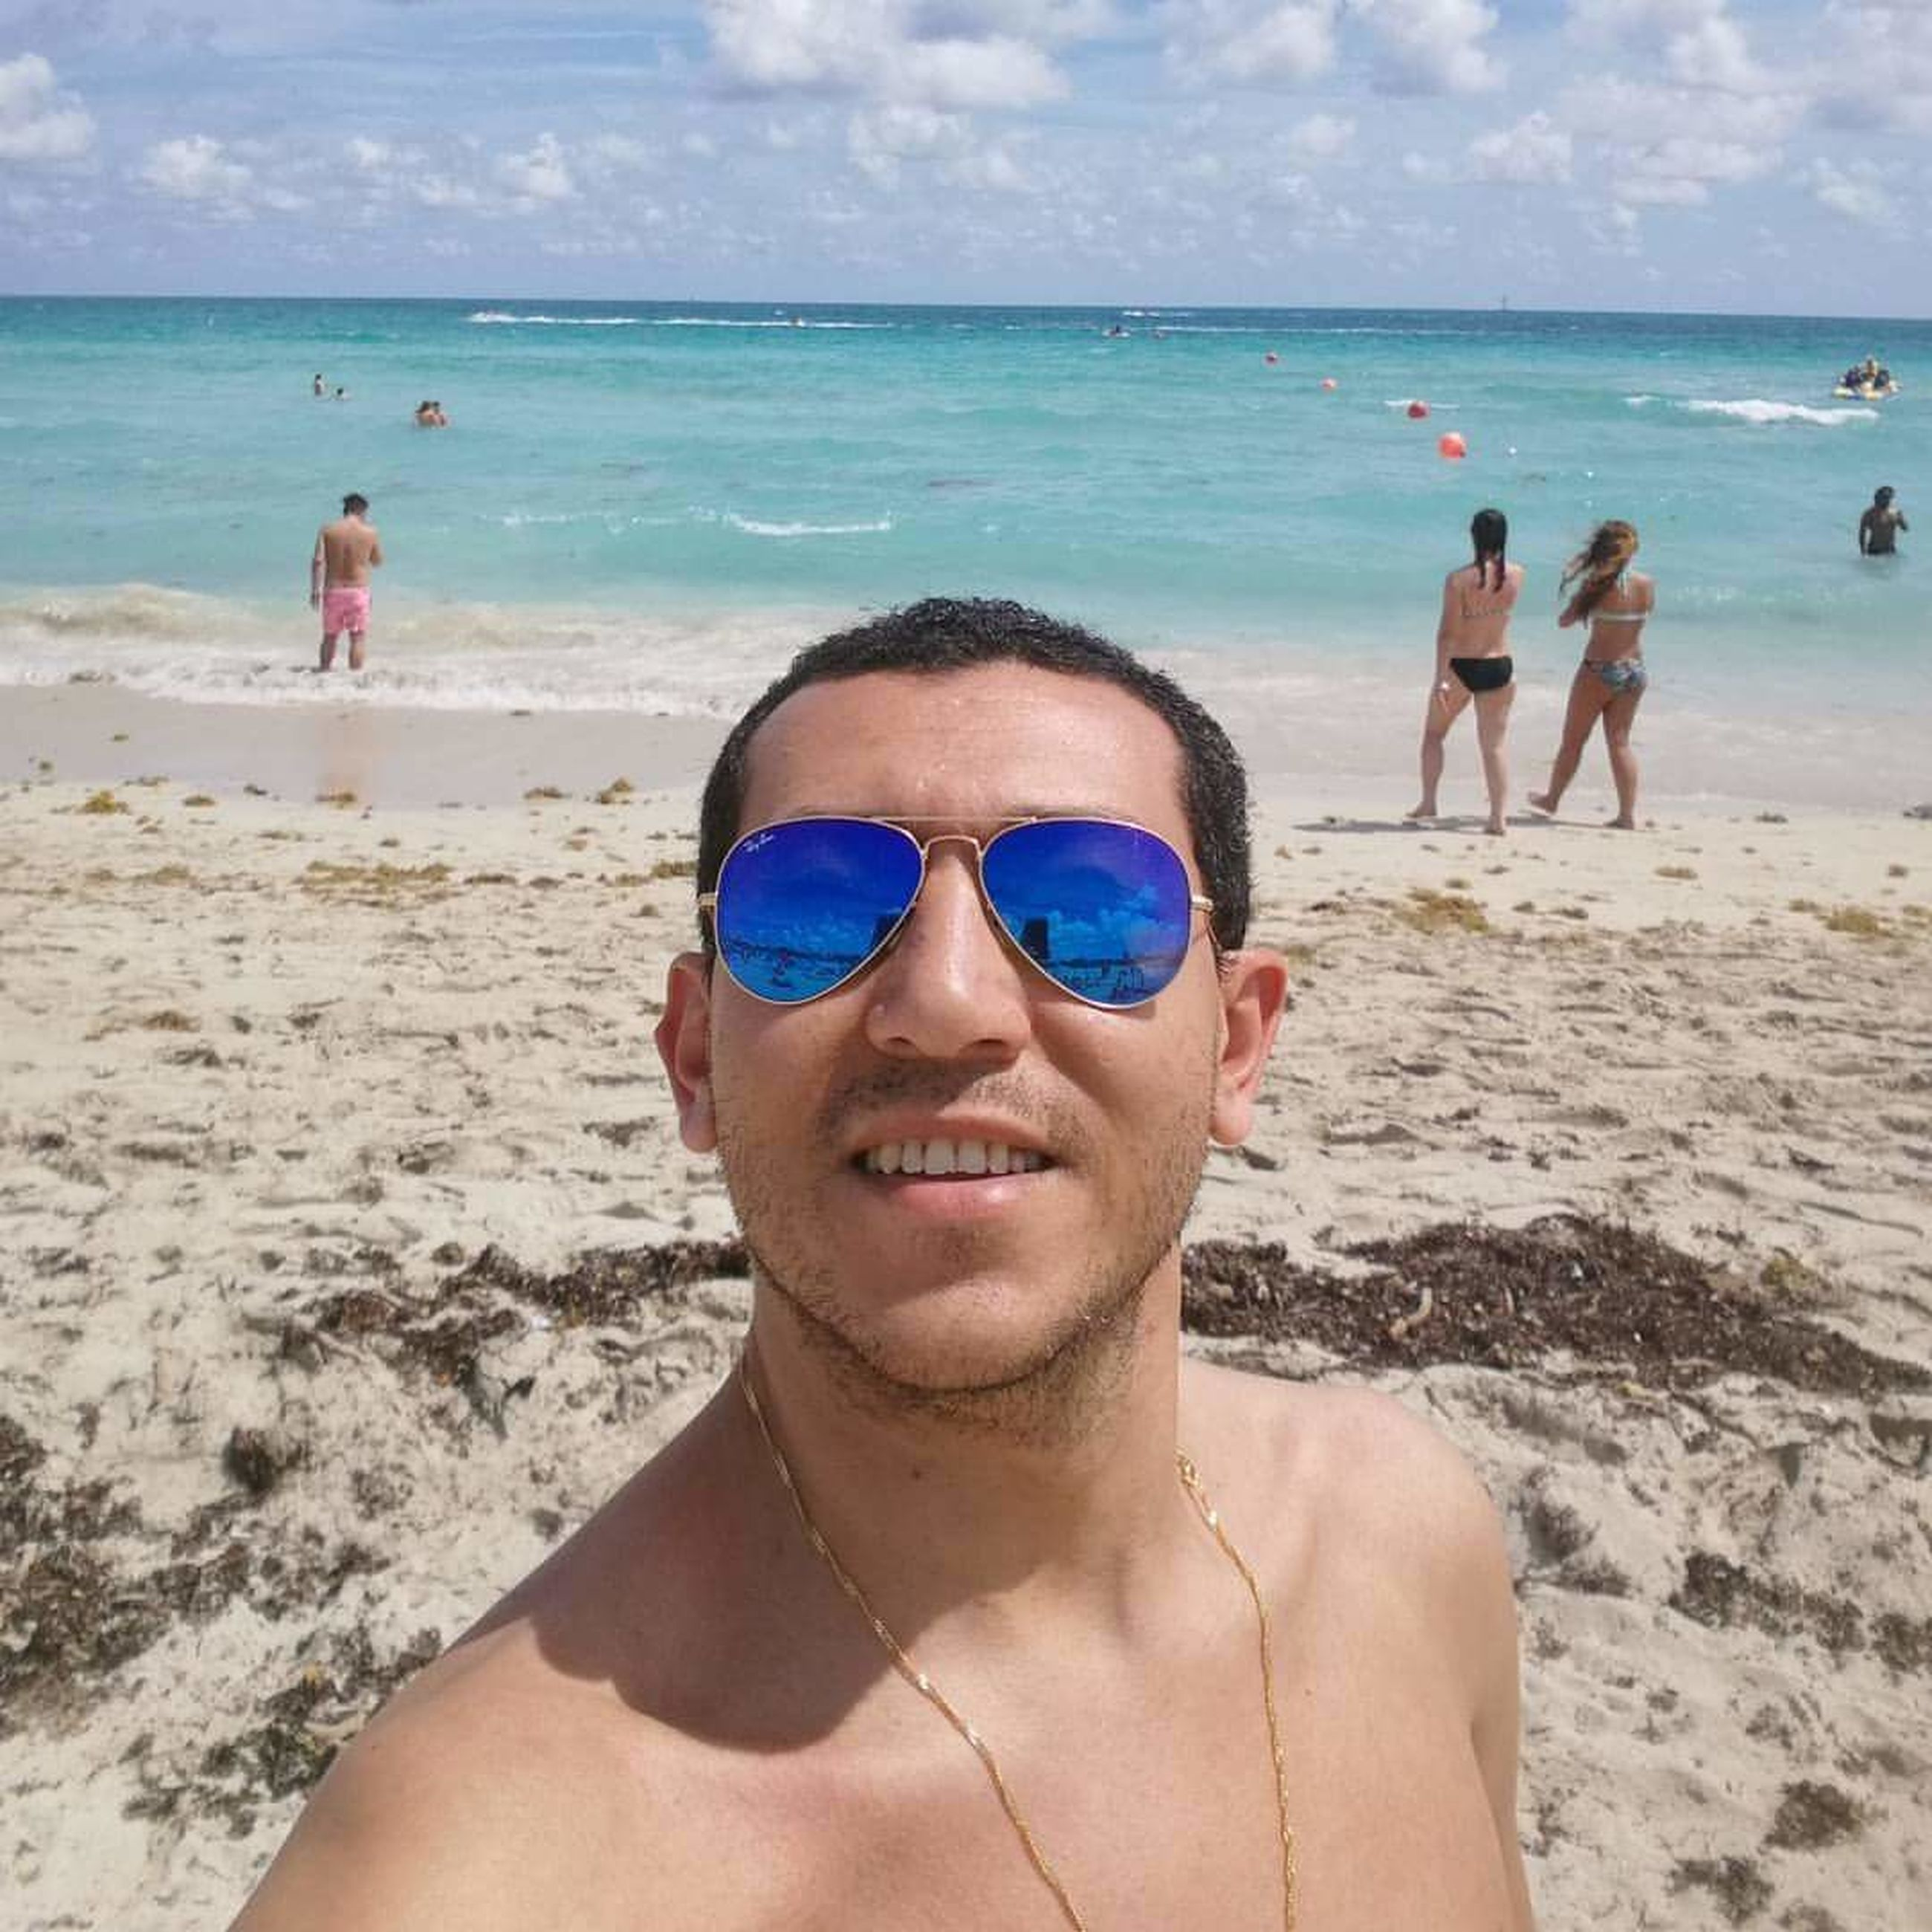 beach, sand, sea, vacations, mature adult, beach holiday, headshot, adult, horizon over water, people, snorkeling, sky, happiness, day, adults only, portrait, outdoors, smiling, nature, close-up